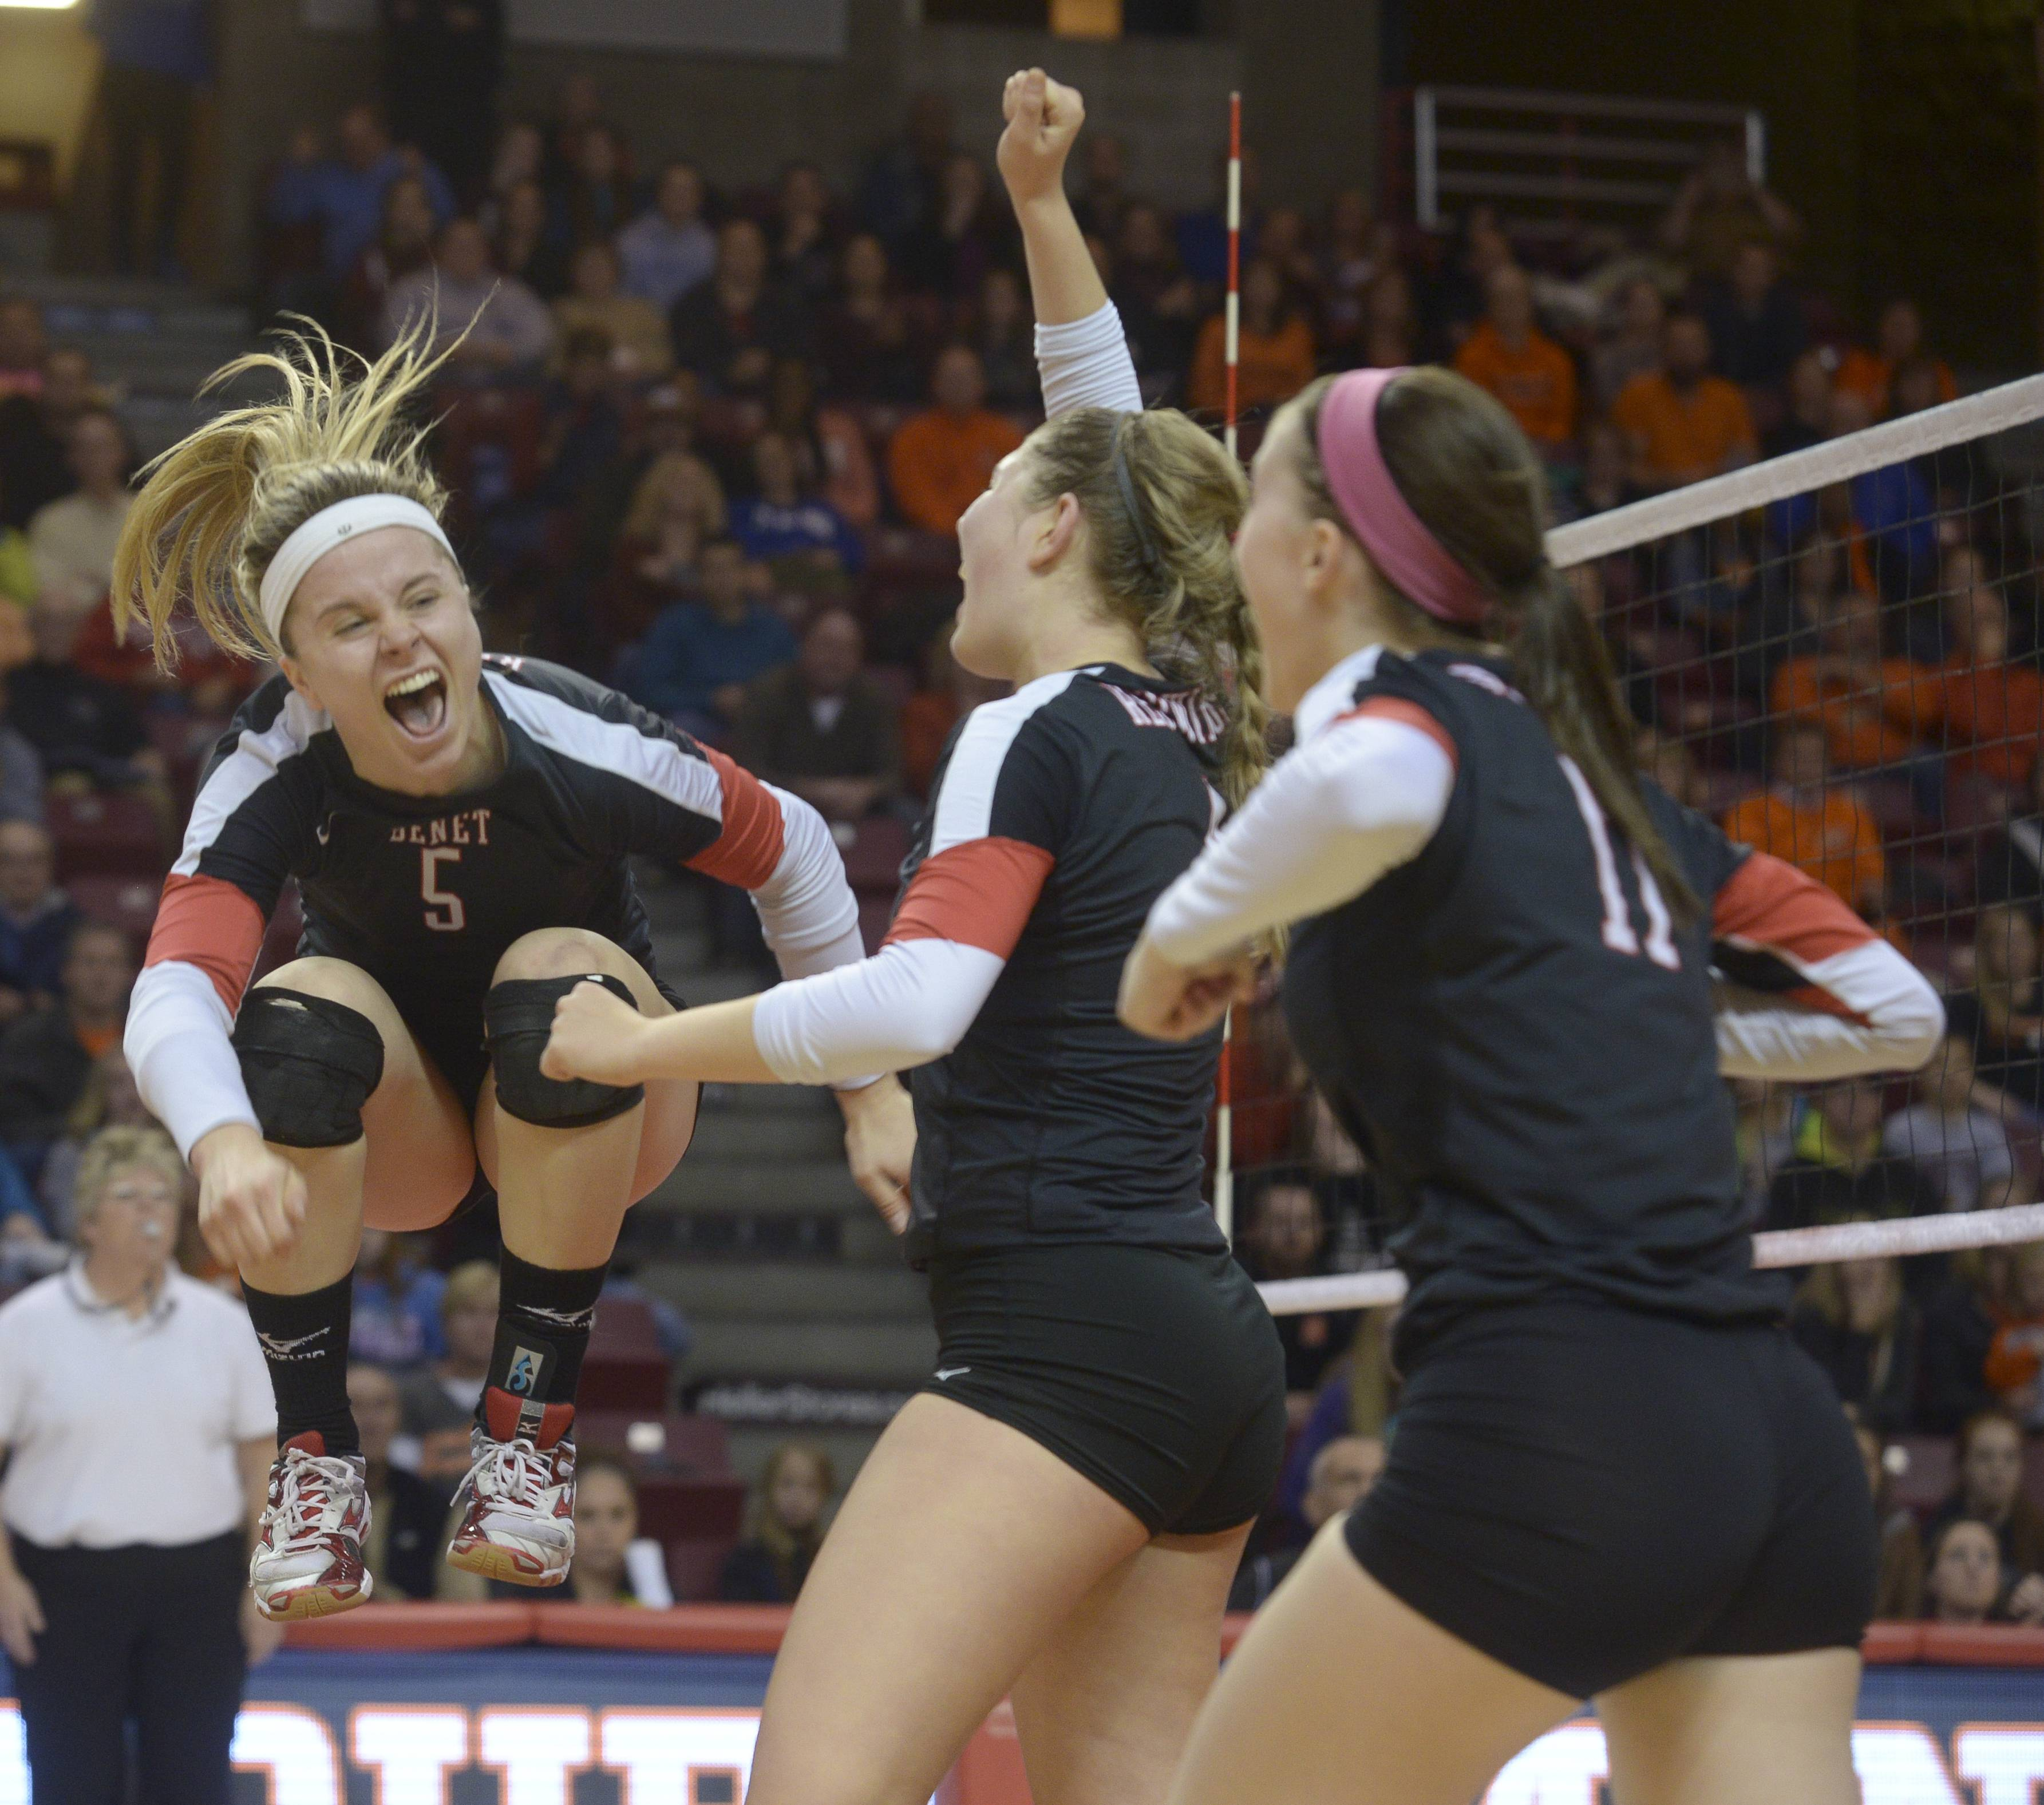 Benet's Tiffany Clark jumps for joy as they defeat Normal Community during the Girls volleyball, Class 4A state semifinal.